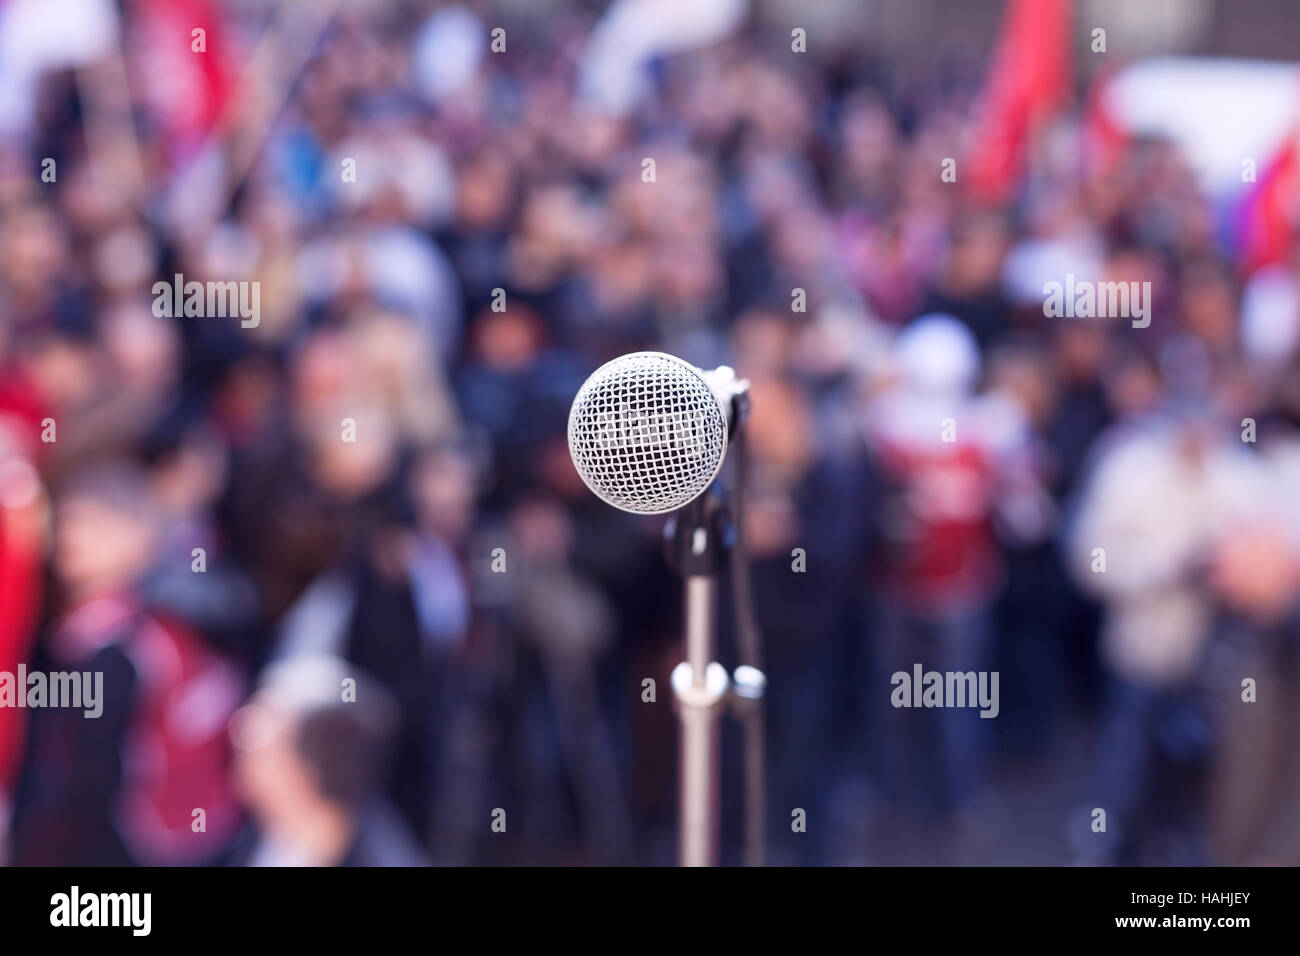 Street protest. Political rally. Microphone in focus against blurred crowd. - Stock Image